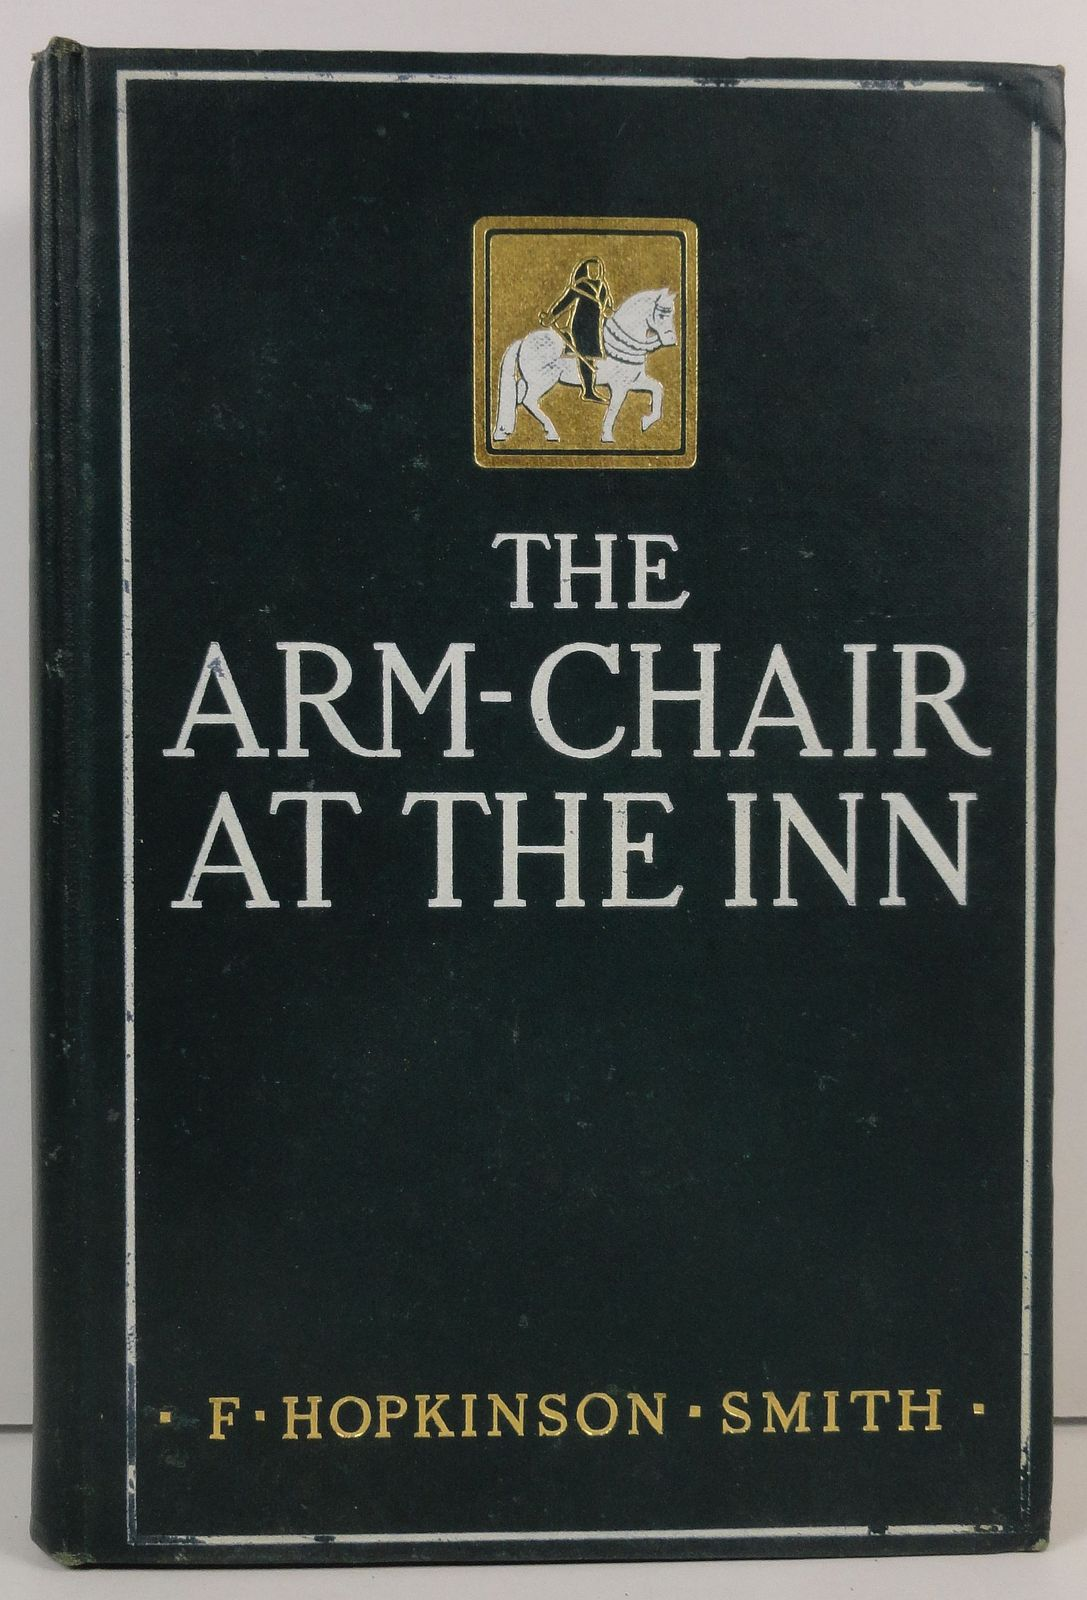 The Arm Chair at the Inn by F Hopkinson Smith 1912 Scribners